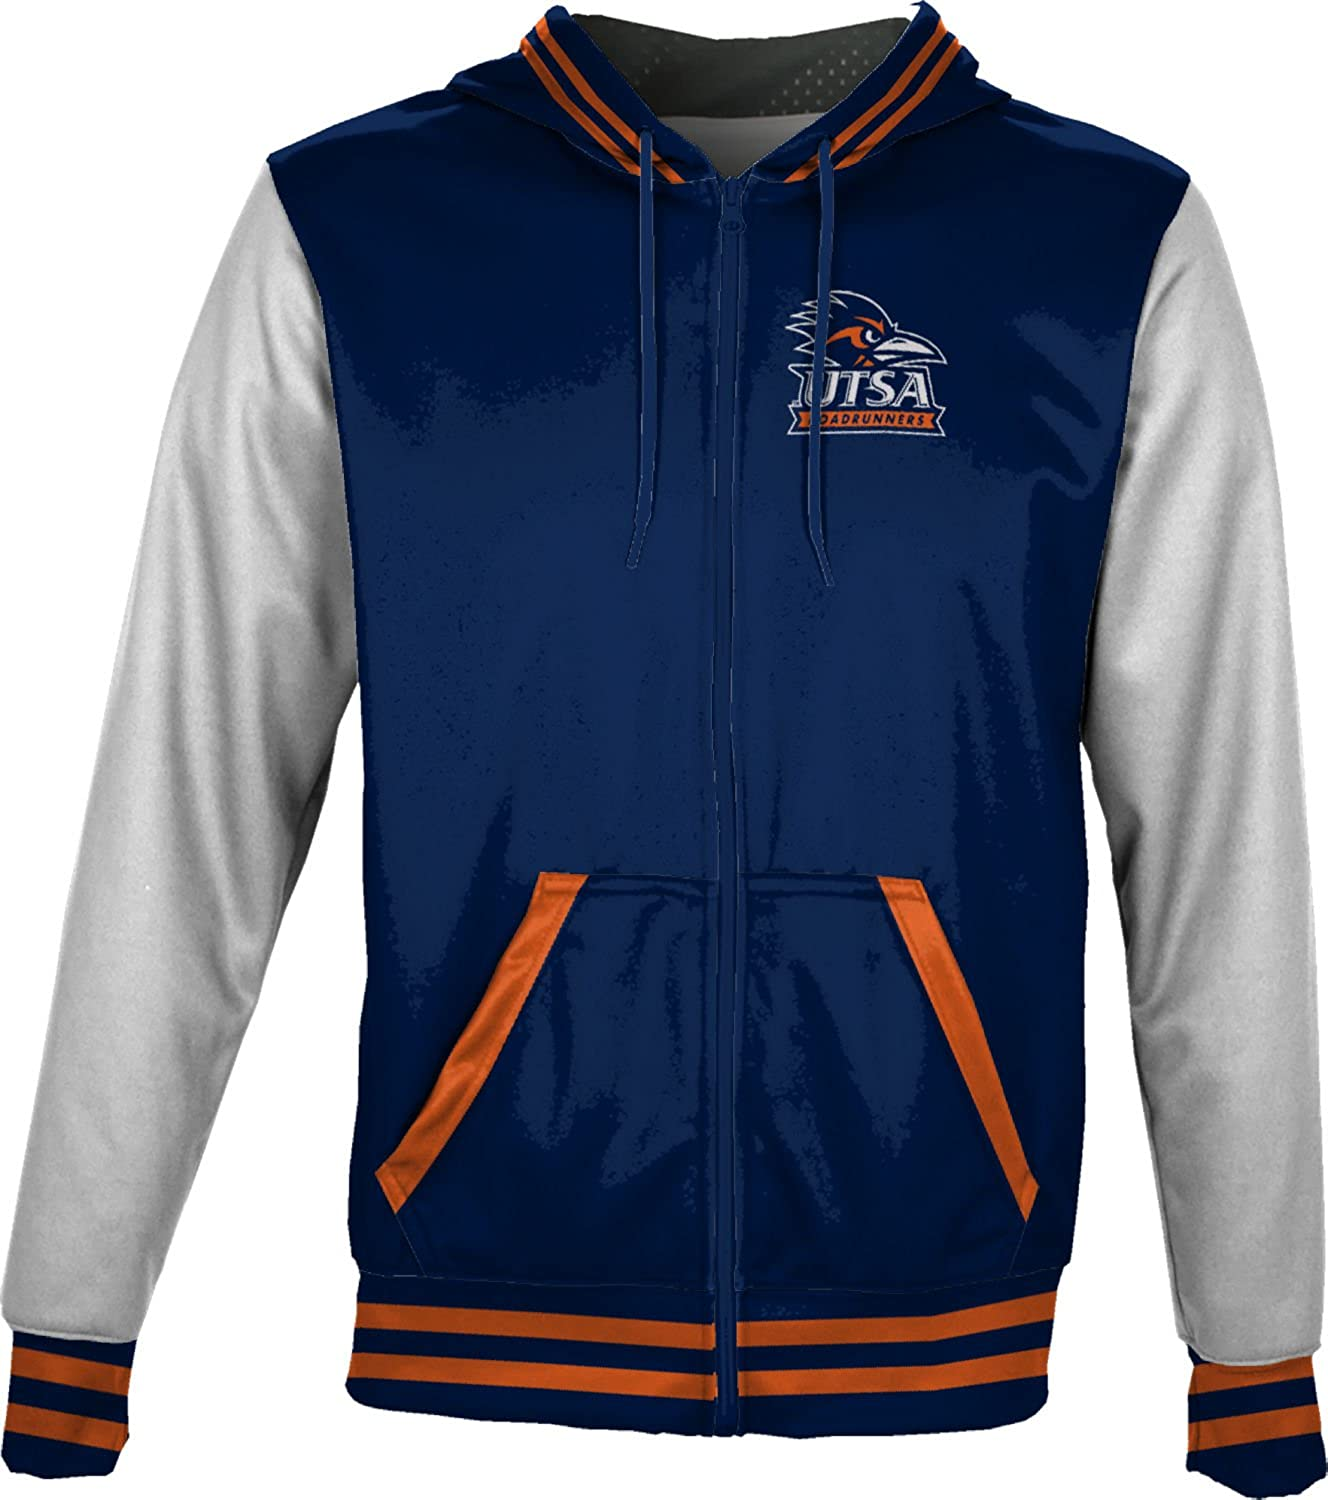 Letterman The University of Texas at San Antonio Boys Full Zip Hoodie